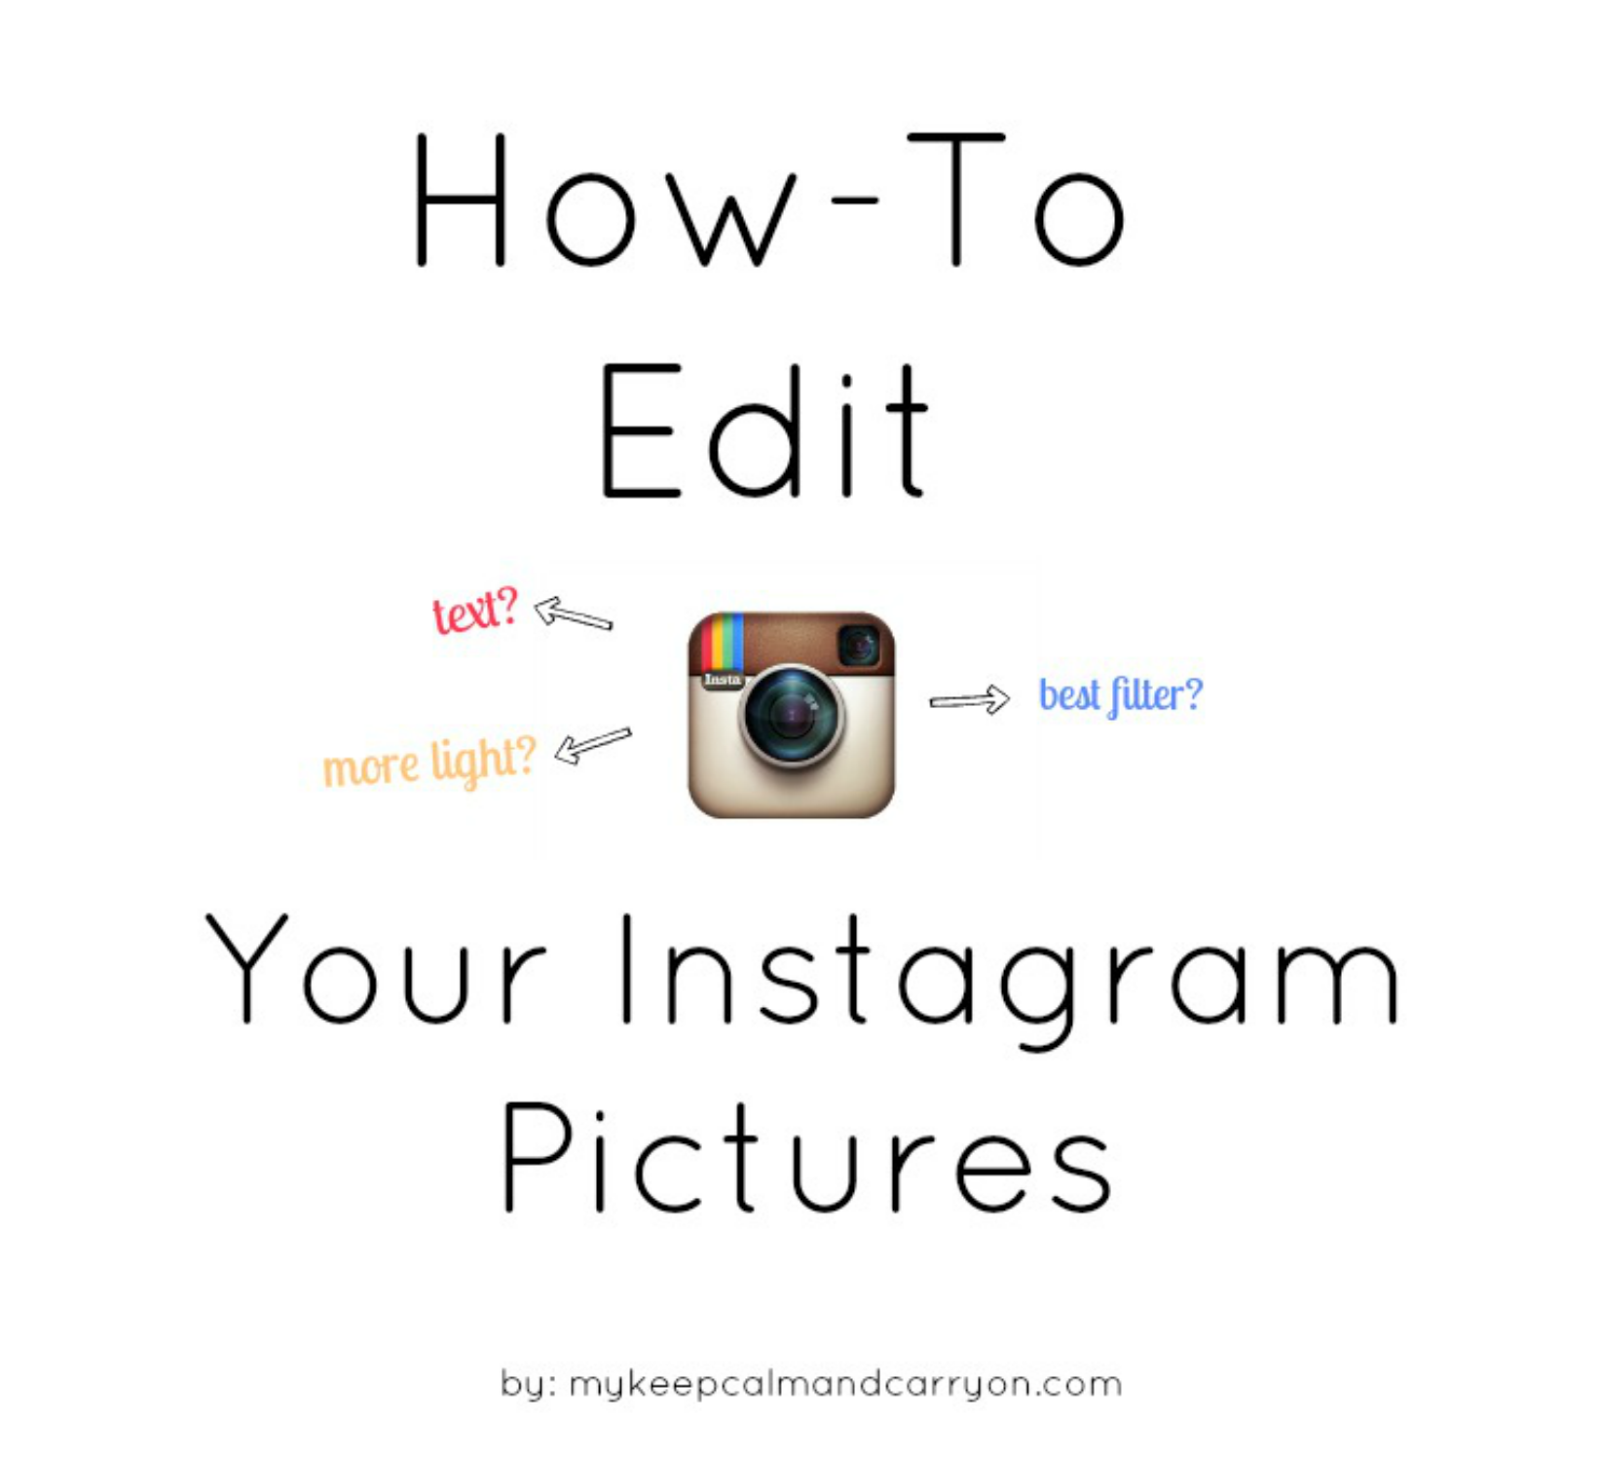 How To Edit Your Instagram Pictures